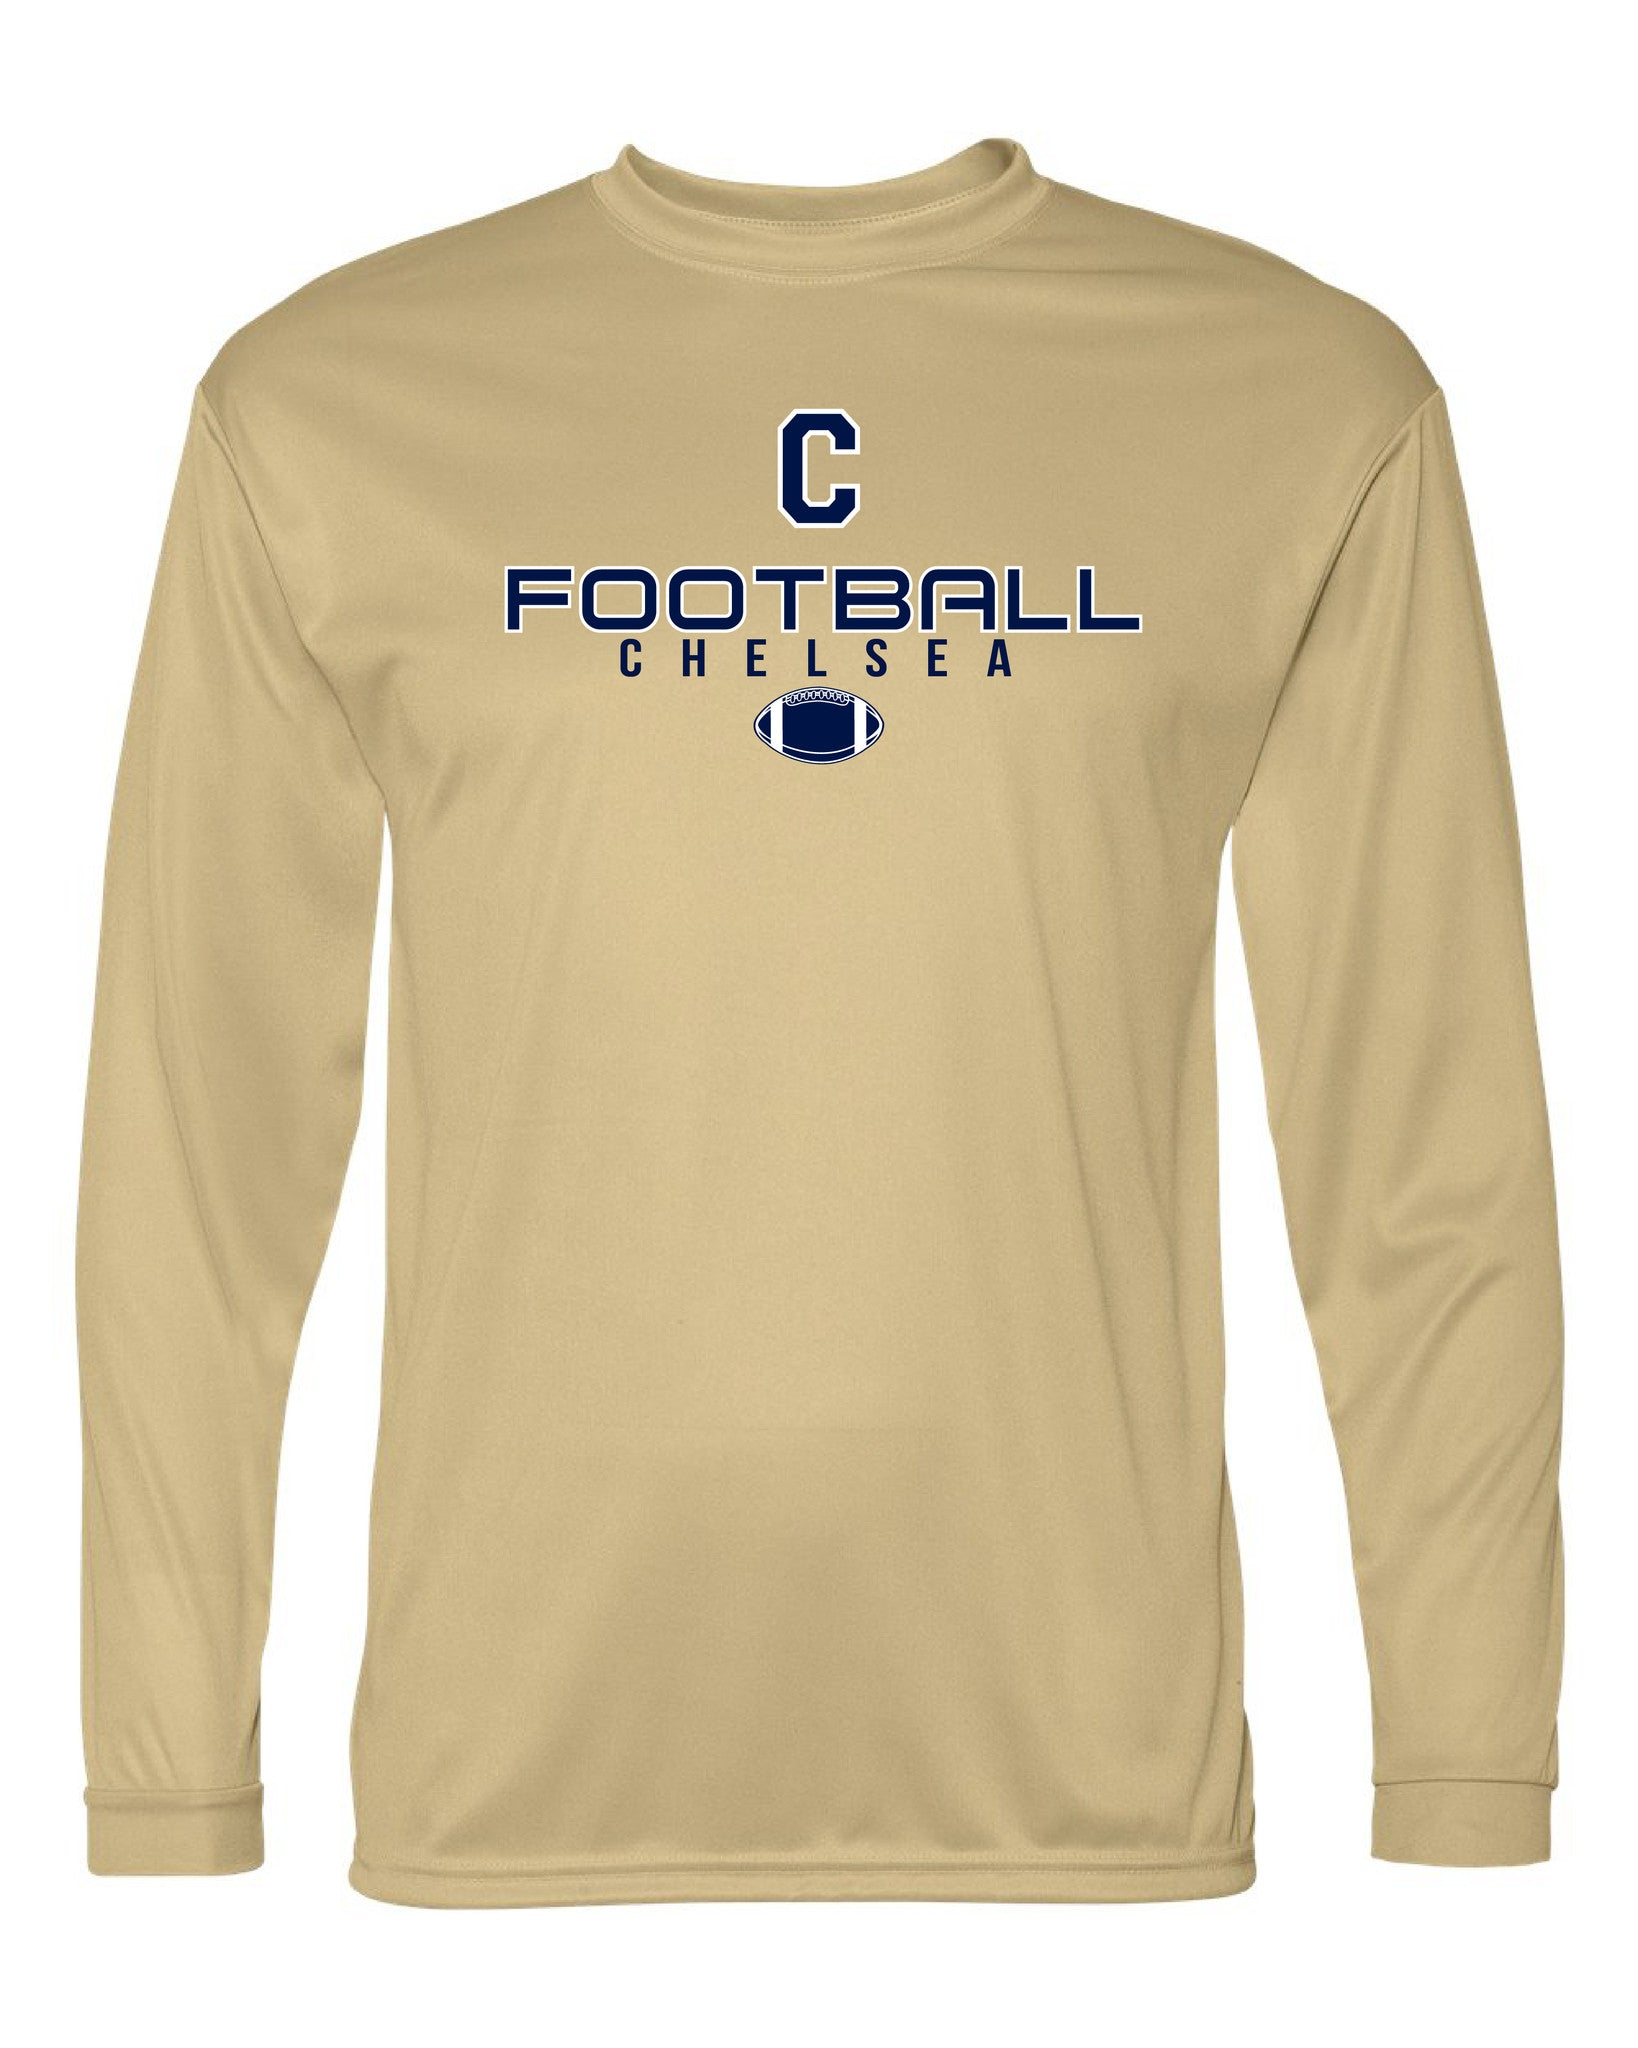 Youth Chelsea Football Long Sleeve Performance Shirt - D001